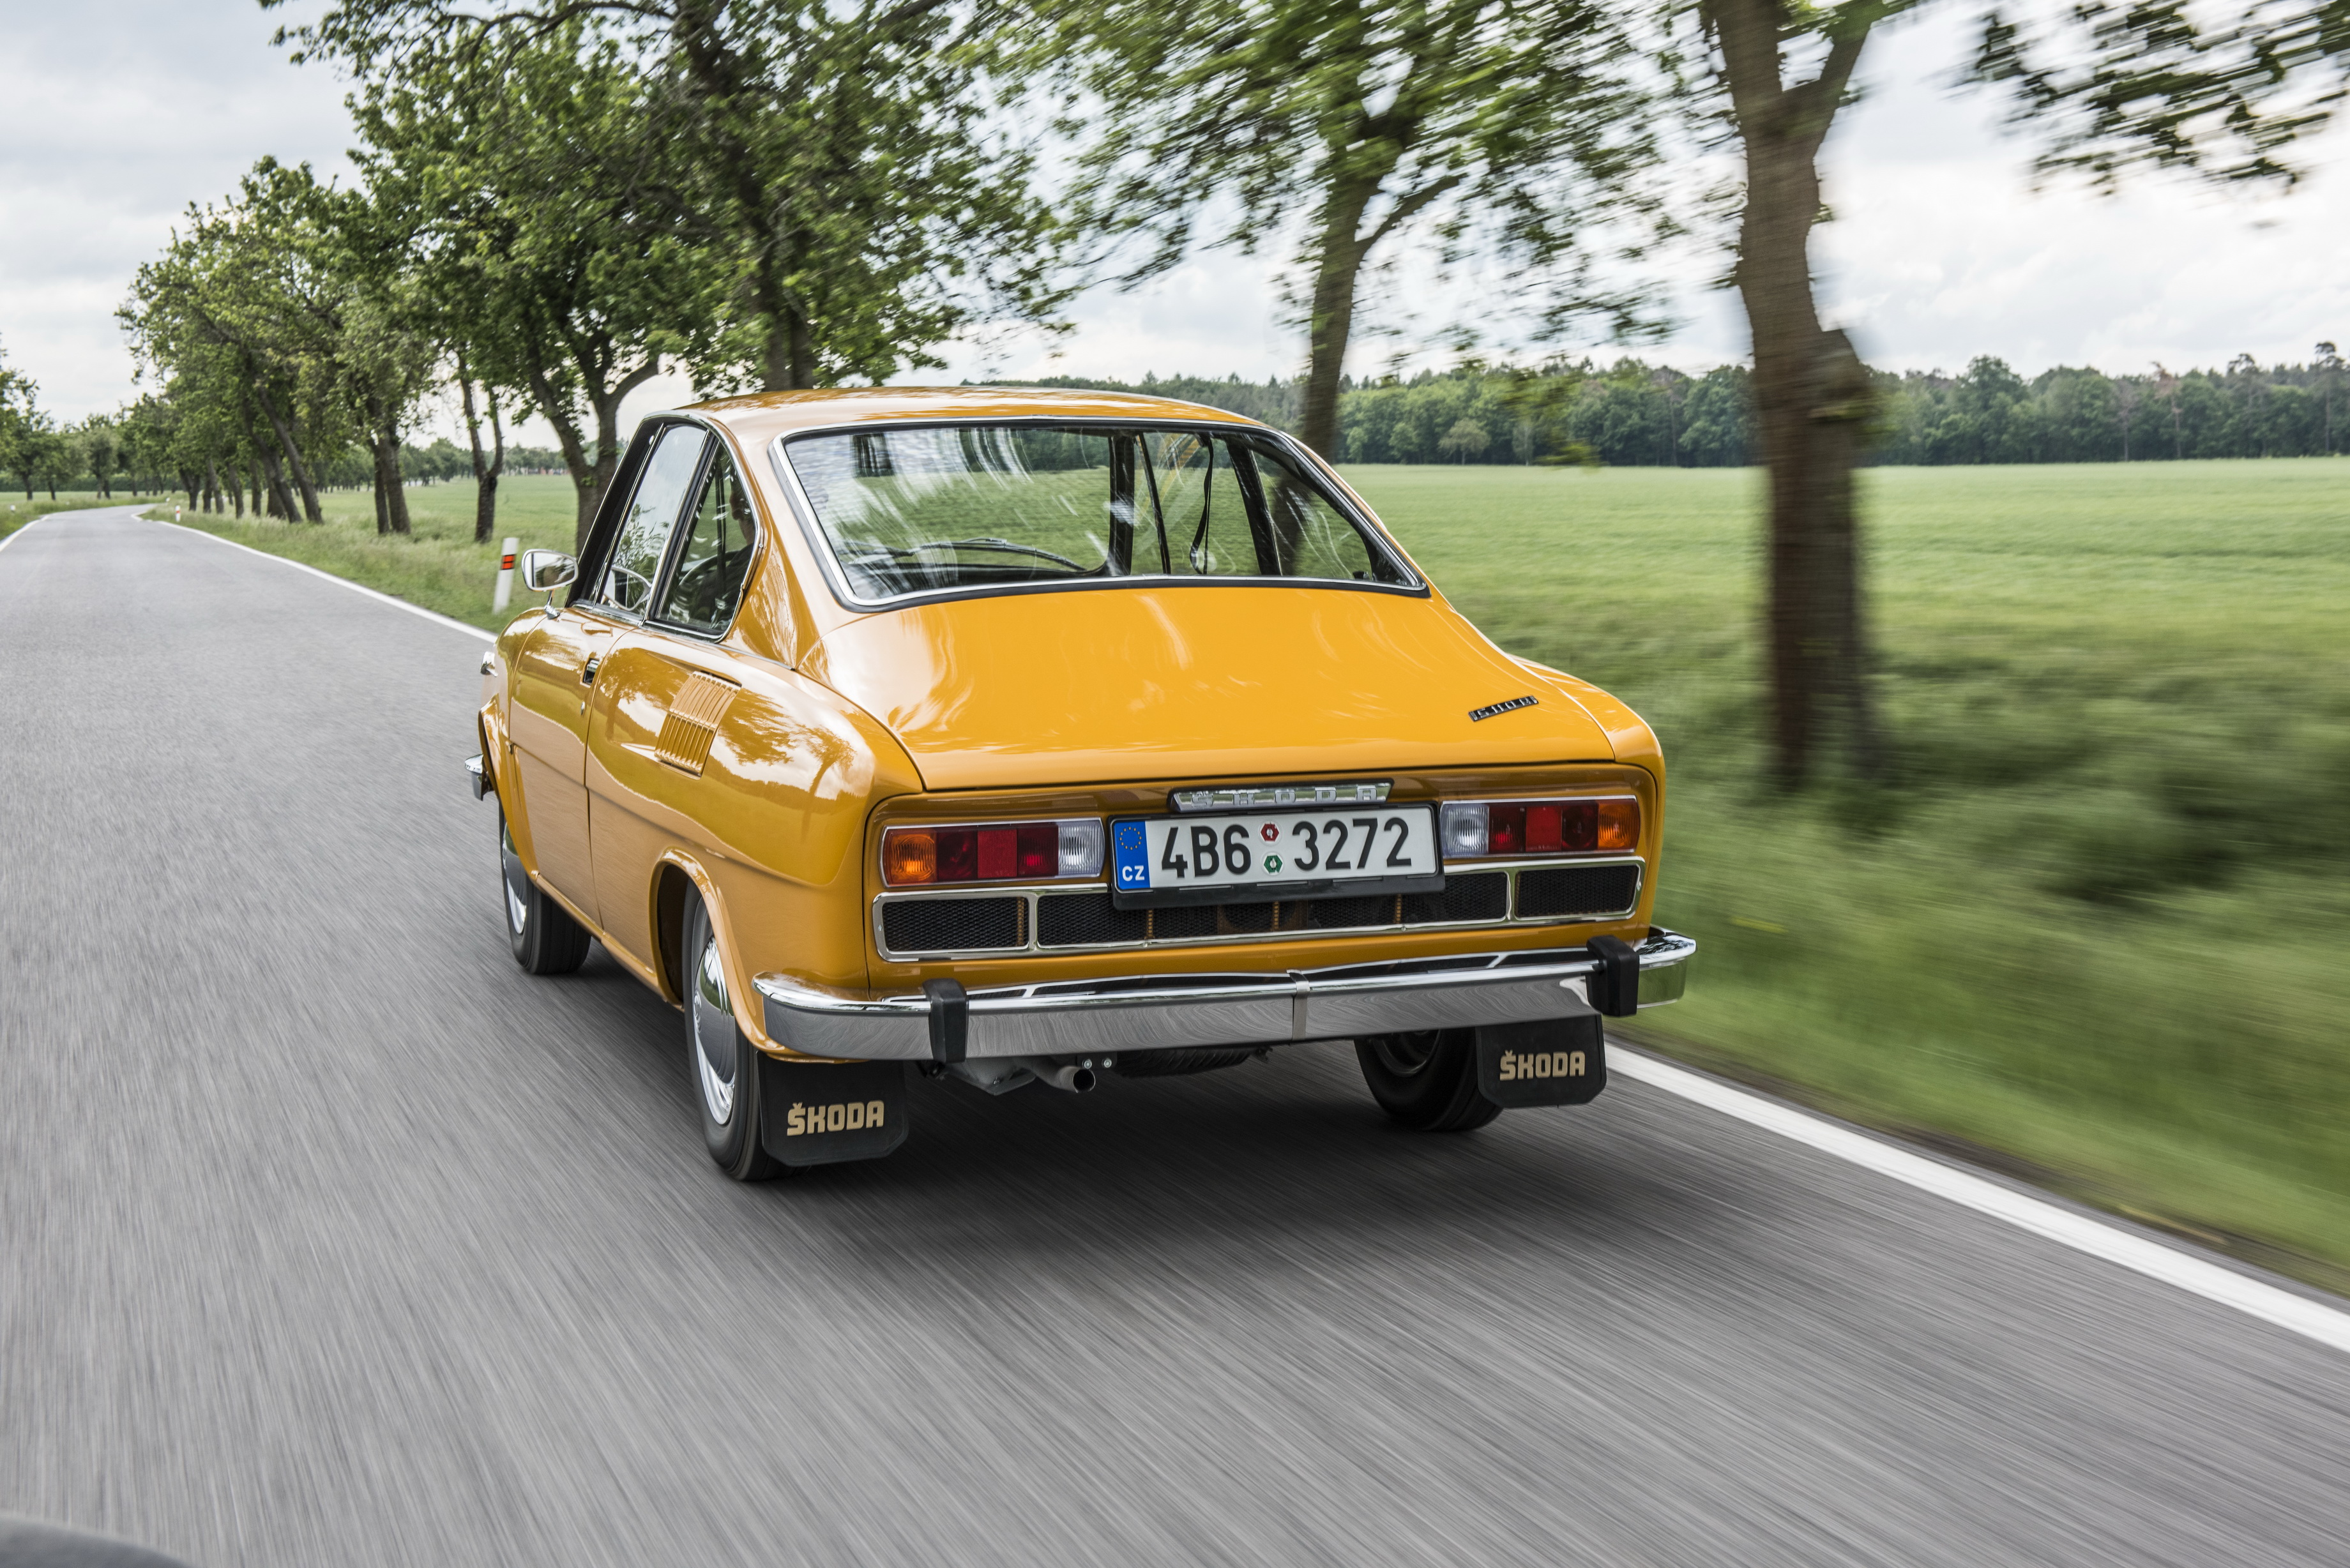 50 years of the 110 R: Half a century ago, SKODA presented its legendary sports coupé - Image 7